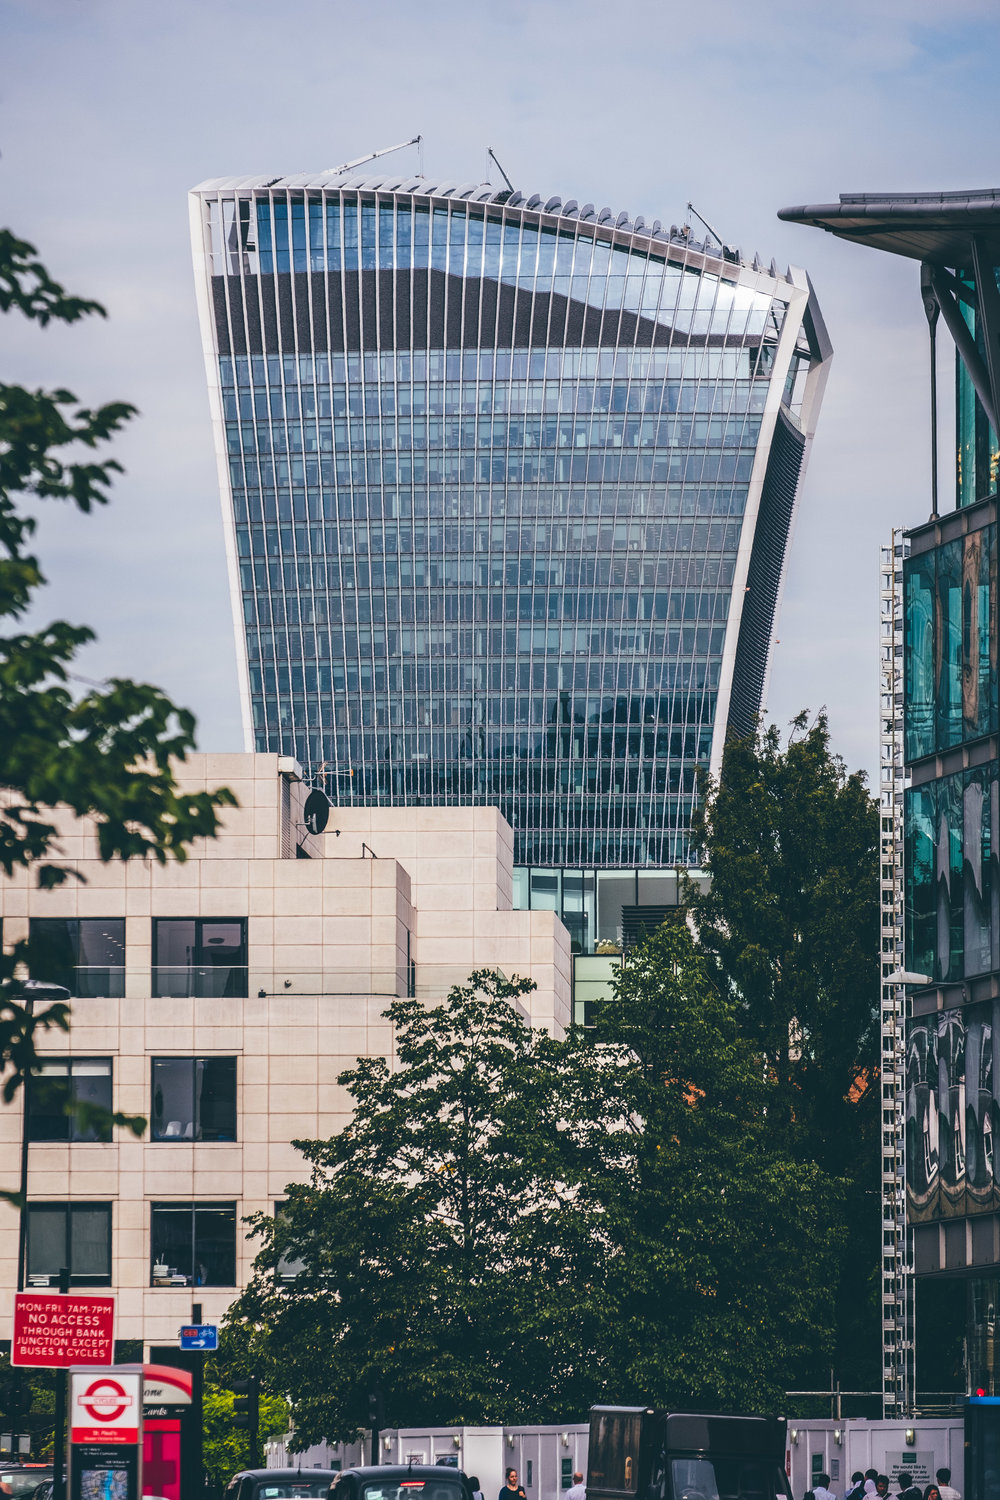 Walkie Talkie | Street Level View